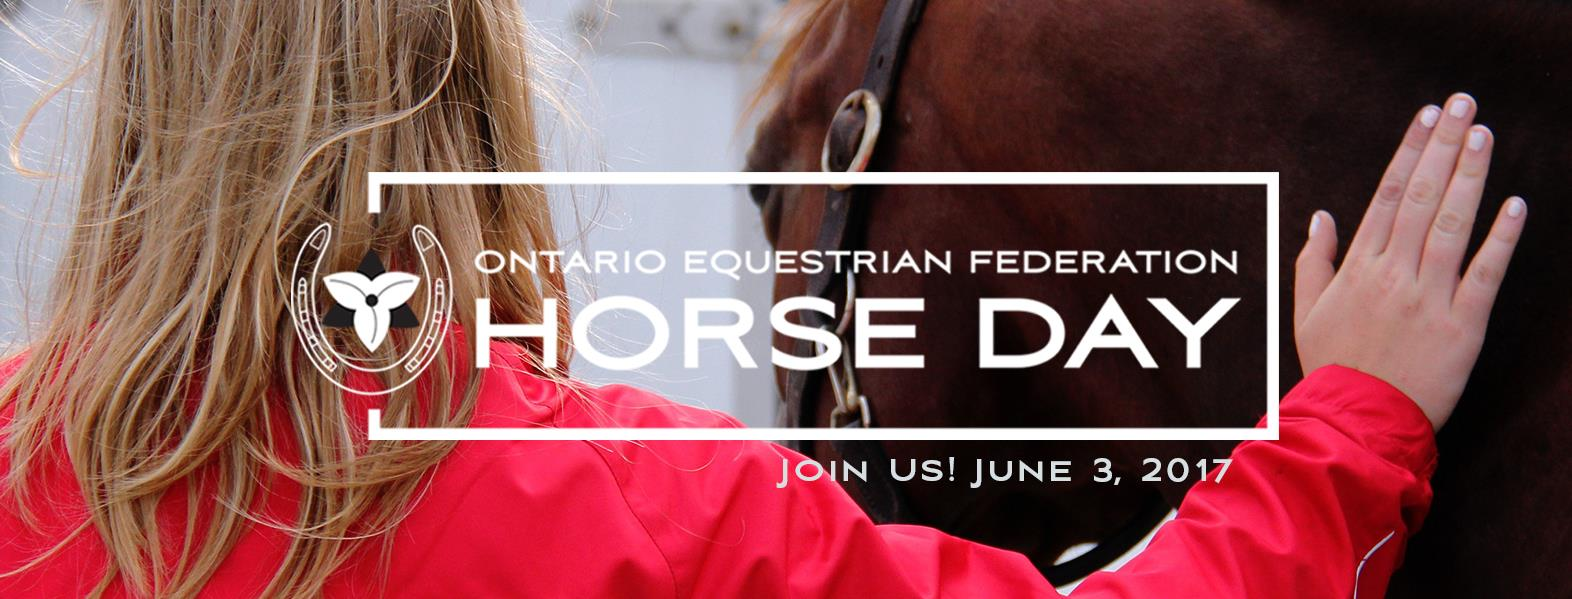 ontario equestrian federation horse day